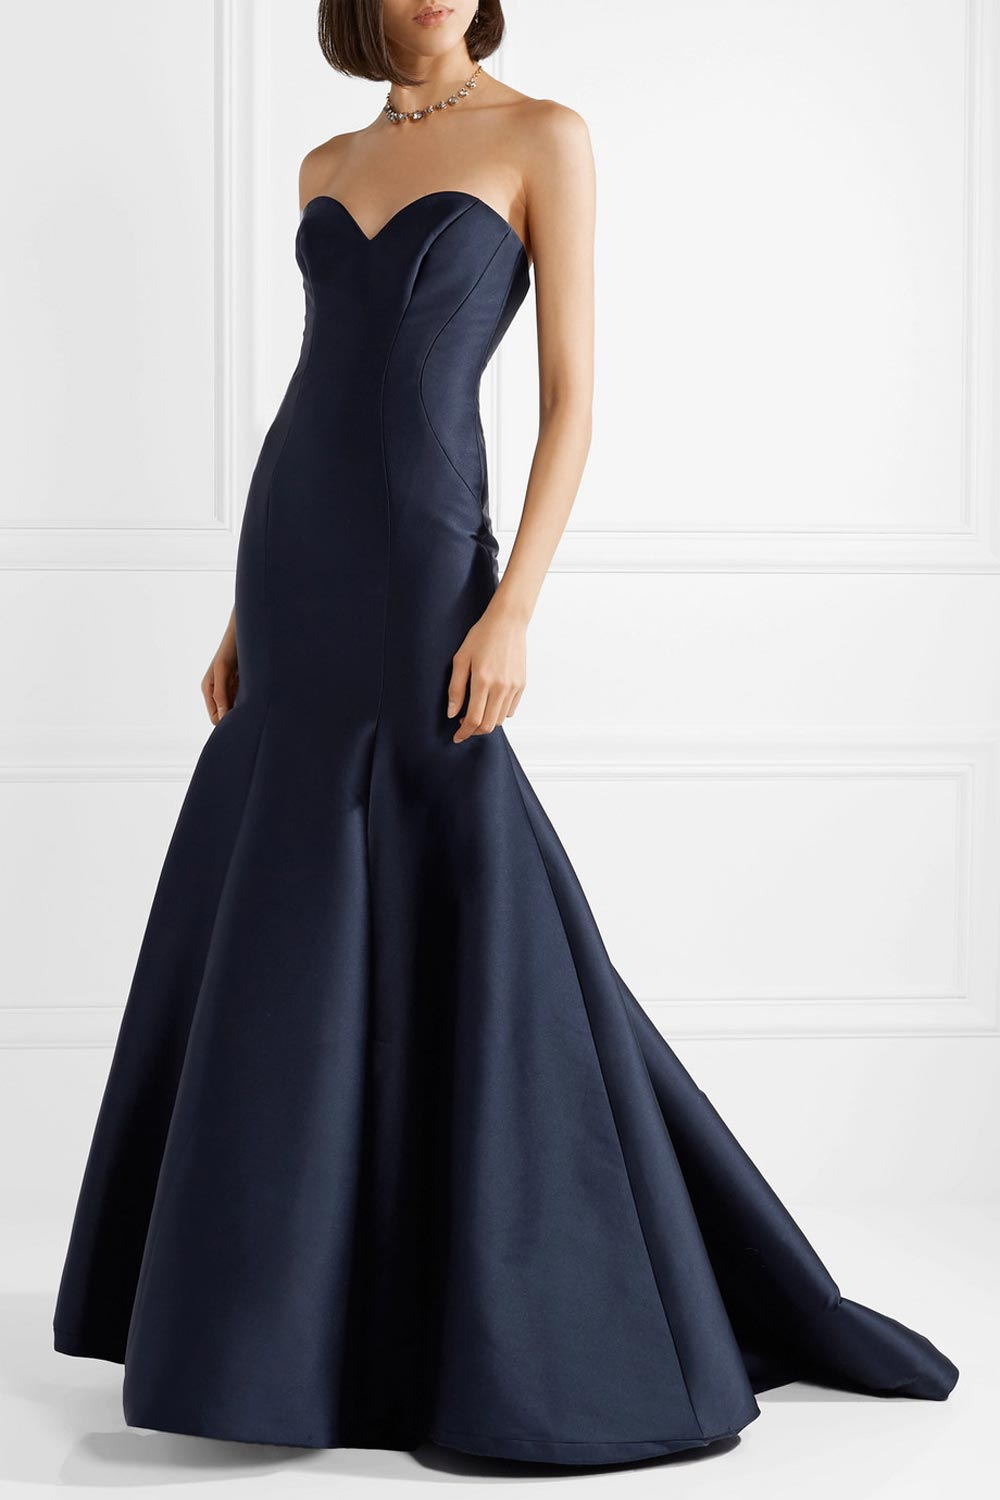 long ceremony dress with train